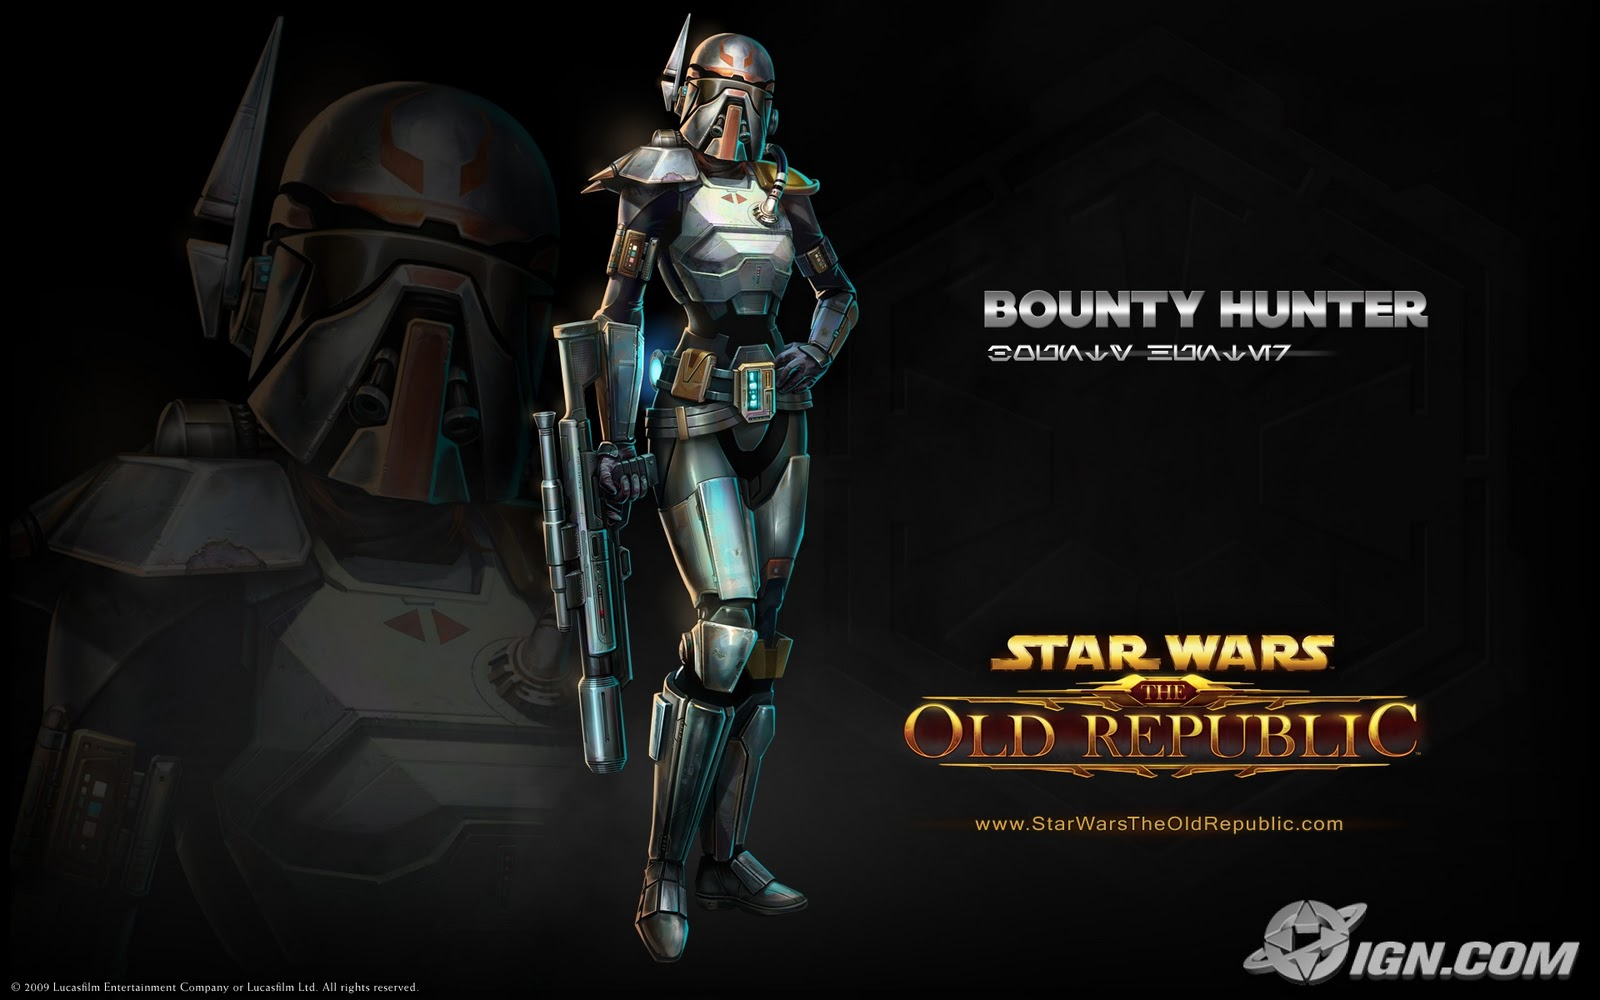 mmo star wars old republic wallpaper image poster | zeromin0